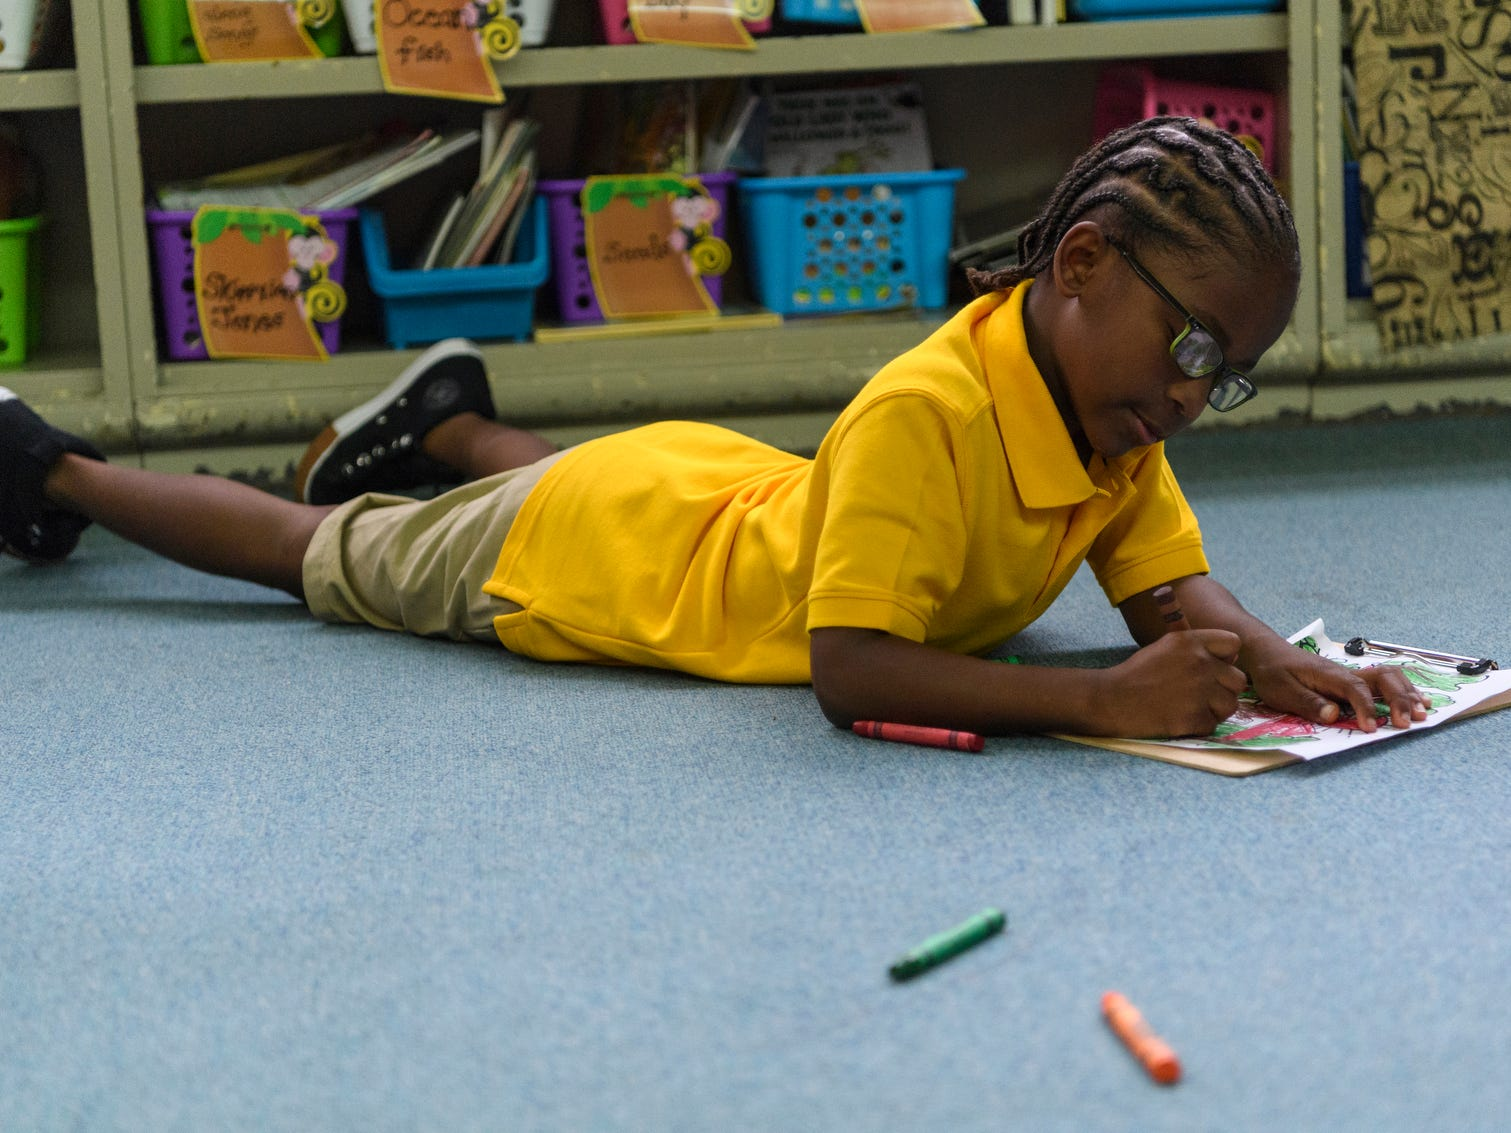 Tralaneous Thigpen makes himself comfortable inside his new kindergarten classroom on the first day of school at Dexter Elementary School in Evansville, Ind., Wednesday, Aug. 8, 2018.